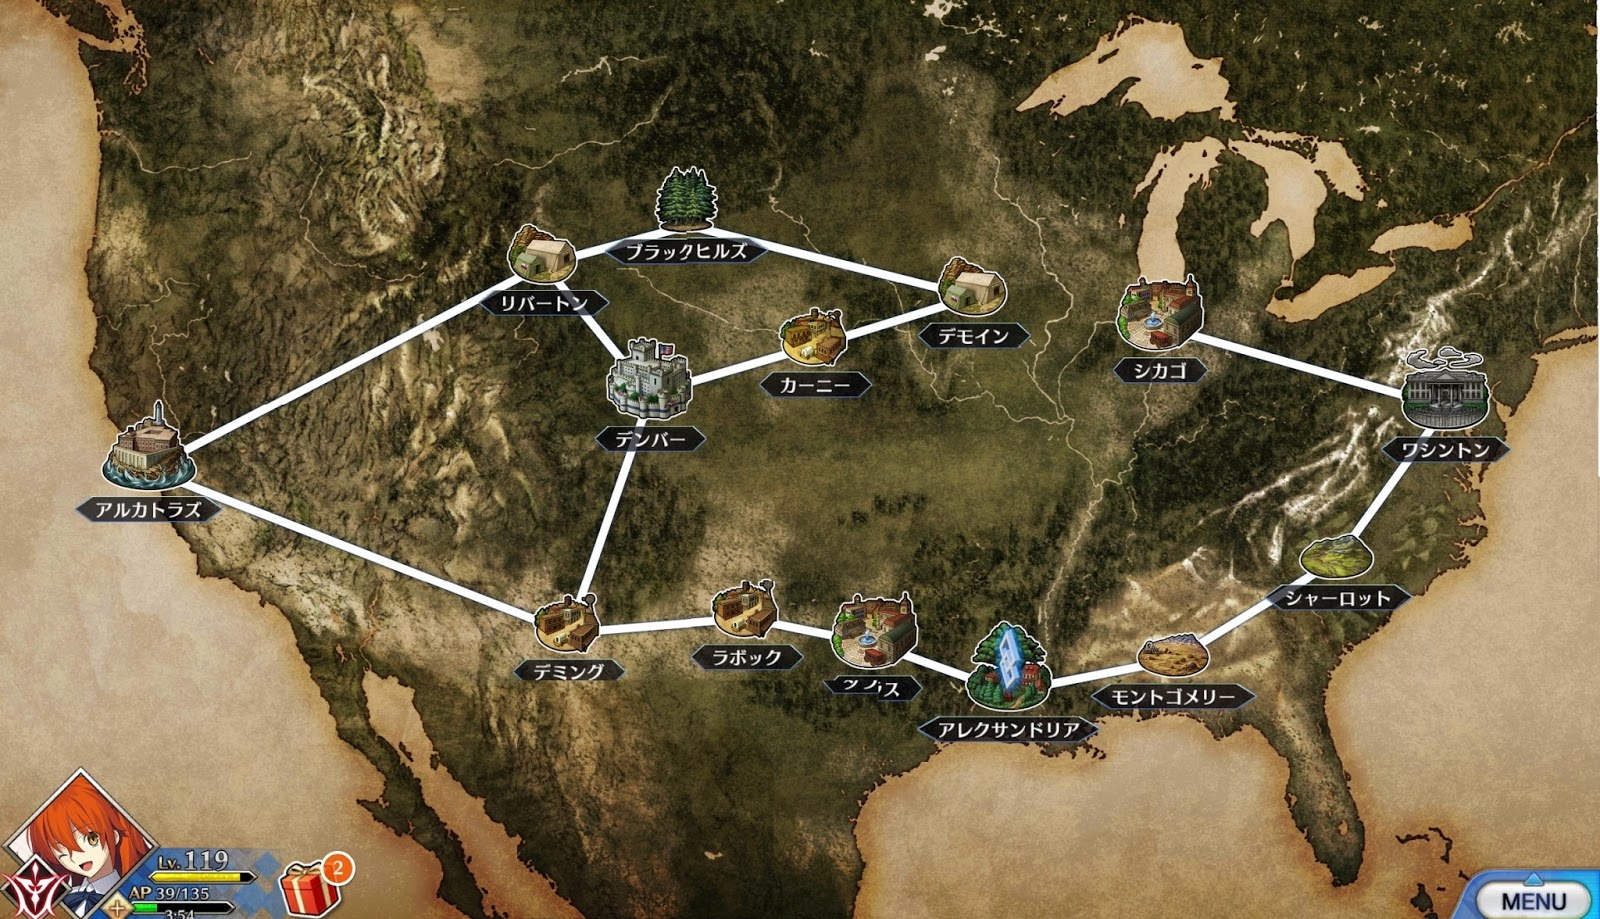 a map of the us from the america chapter of the game each location has numerous battles and can be revisited to grind ingredients for powering up servants